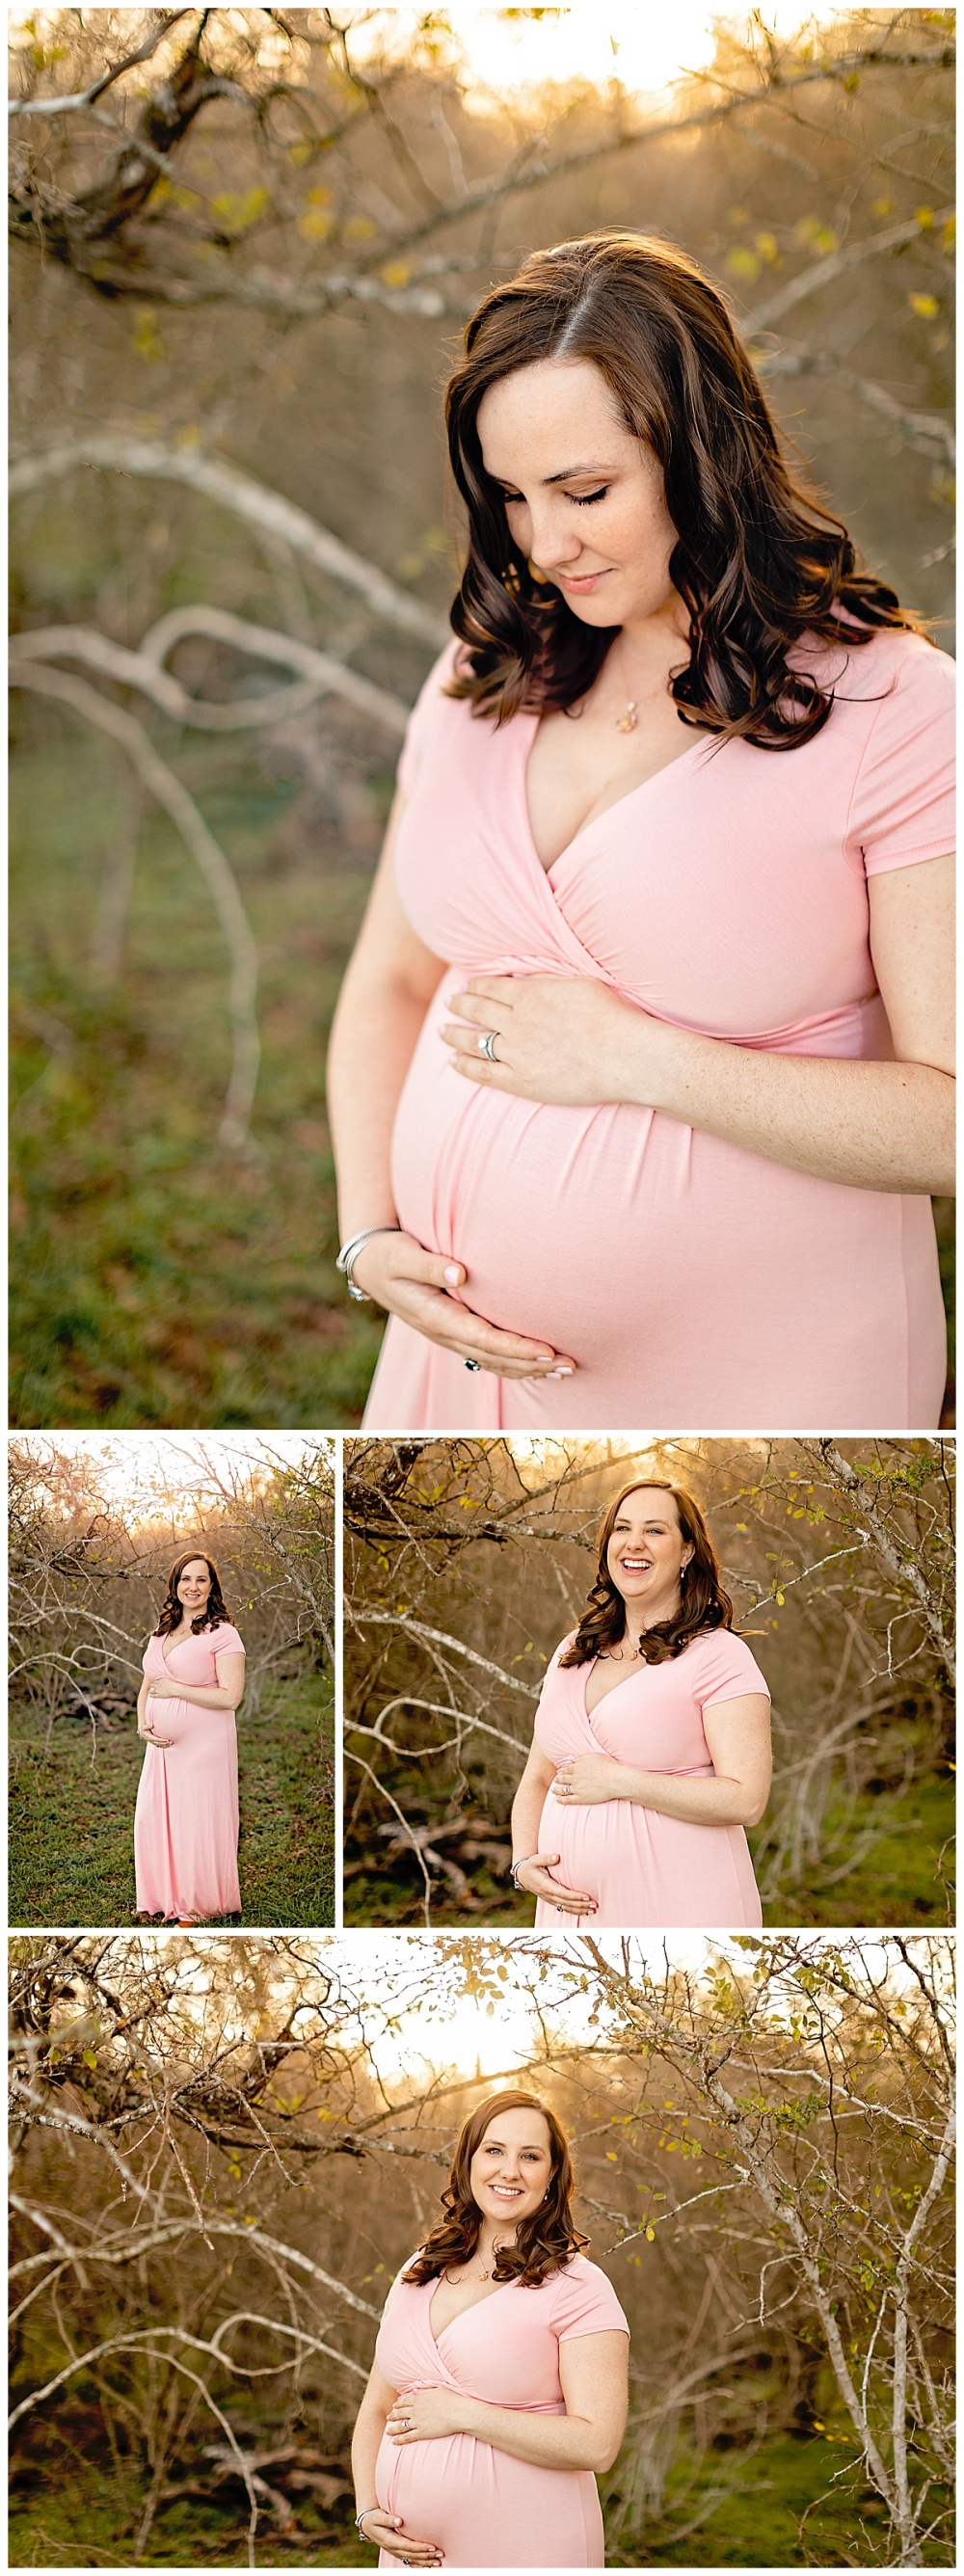 Maternity-Photographer-Texas-Carly-Barton-Photography-LaVernia-Photos_0001.jpg